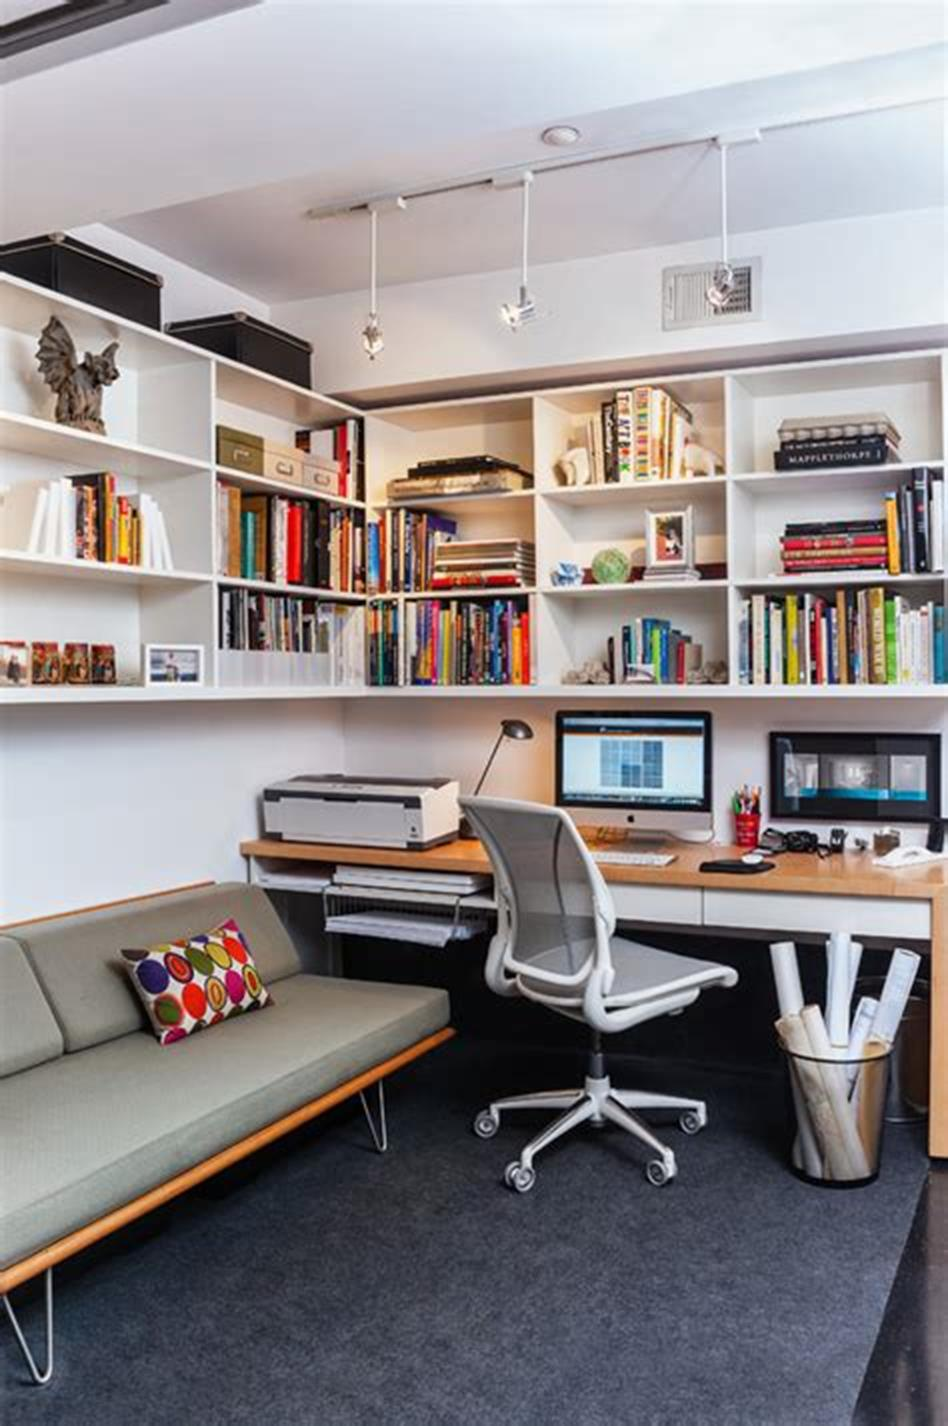 50 Best Small Space Office Decorating Ideas On a Budget 2019 18